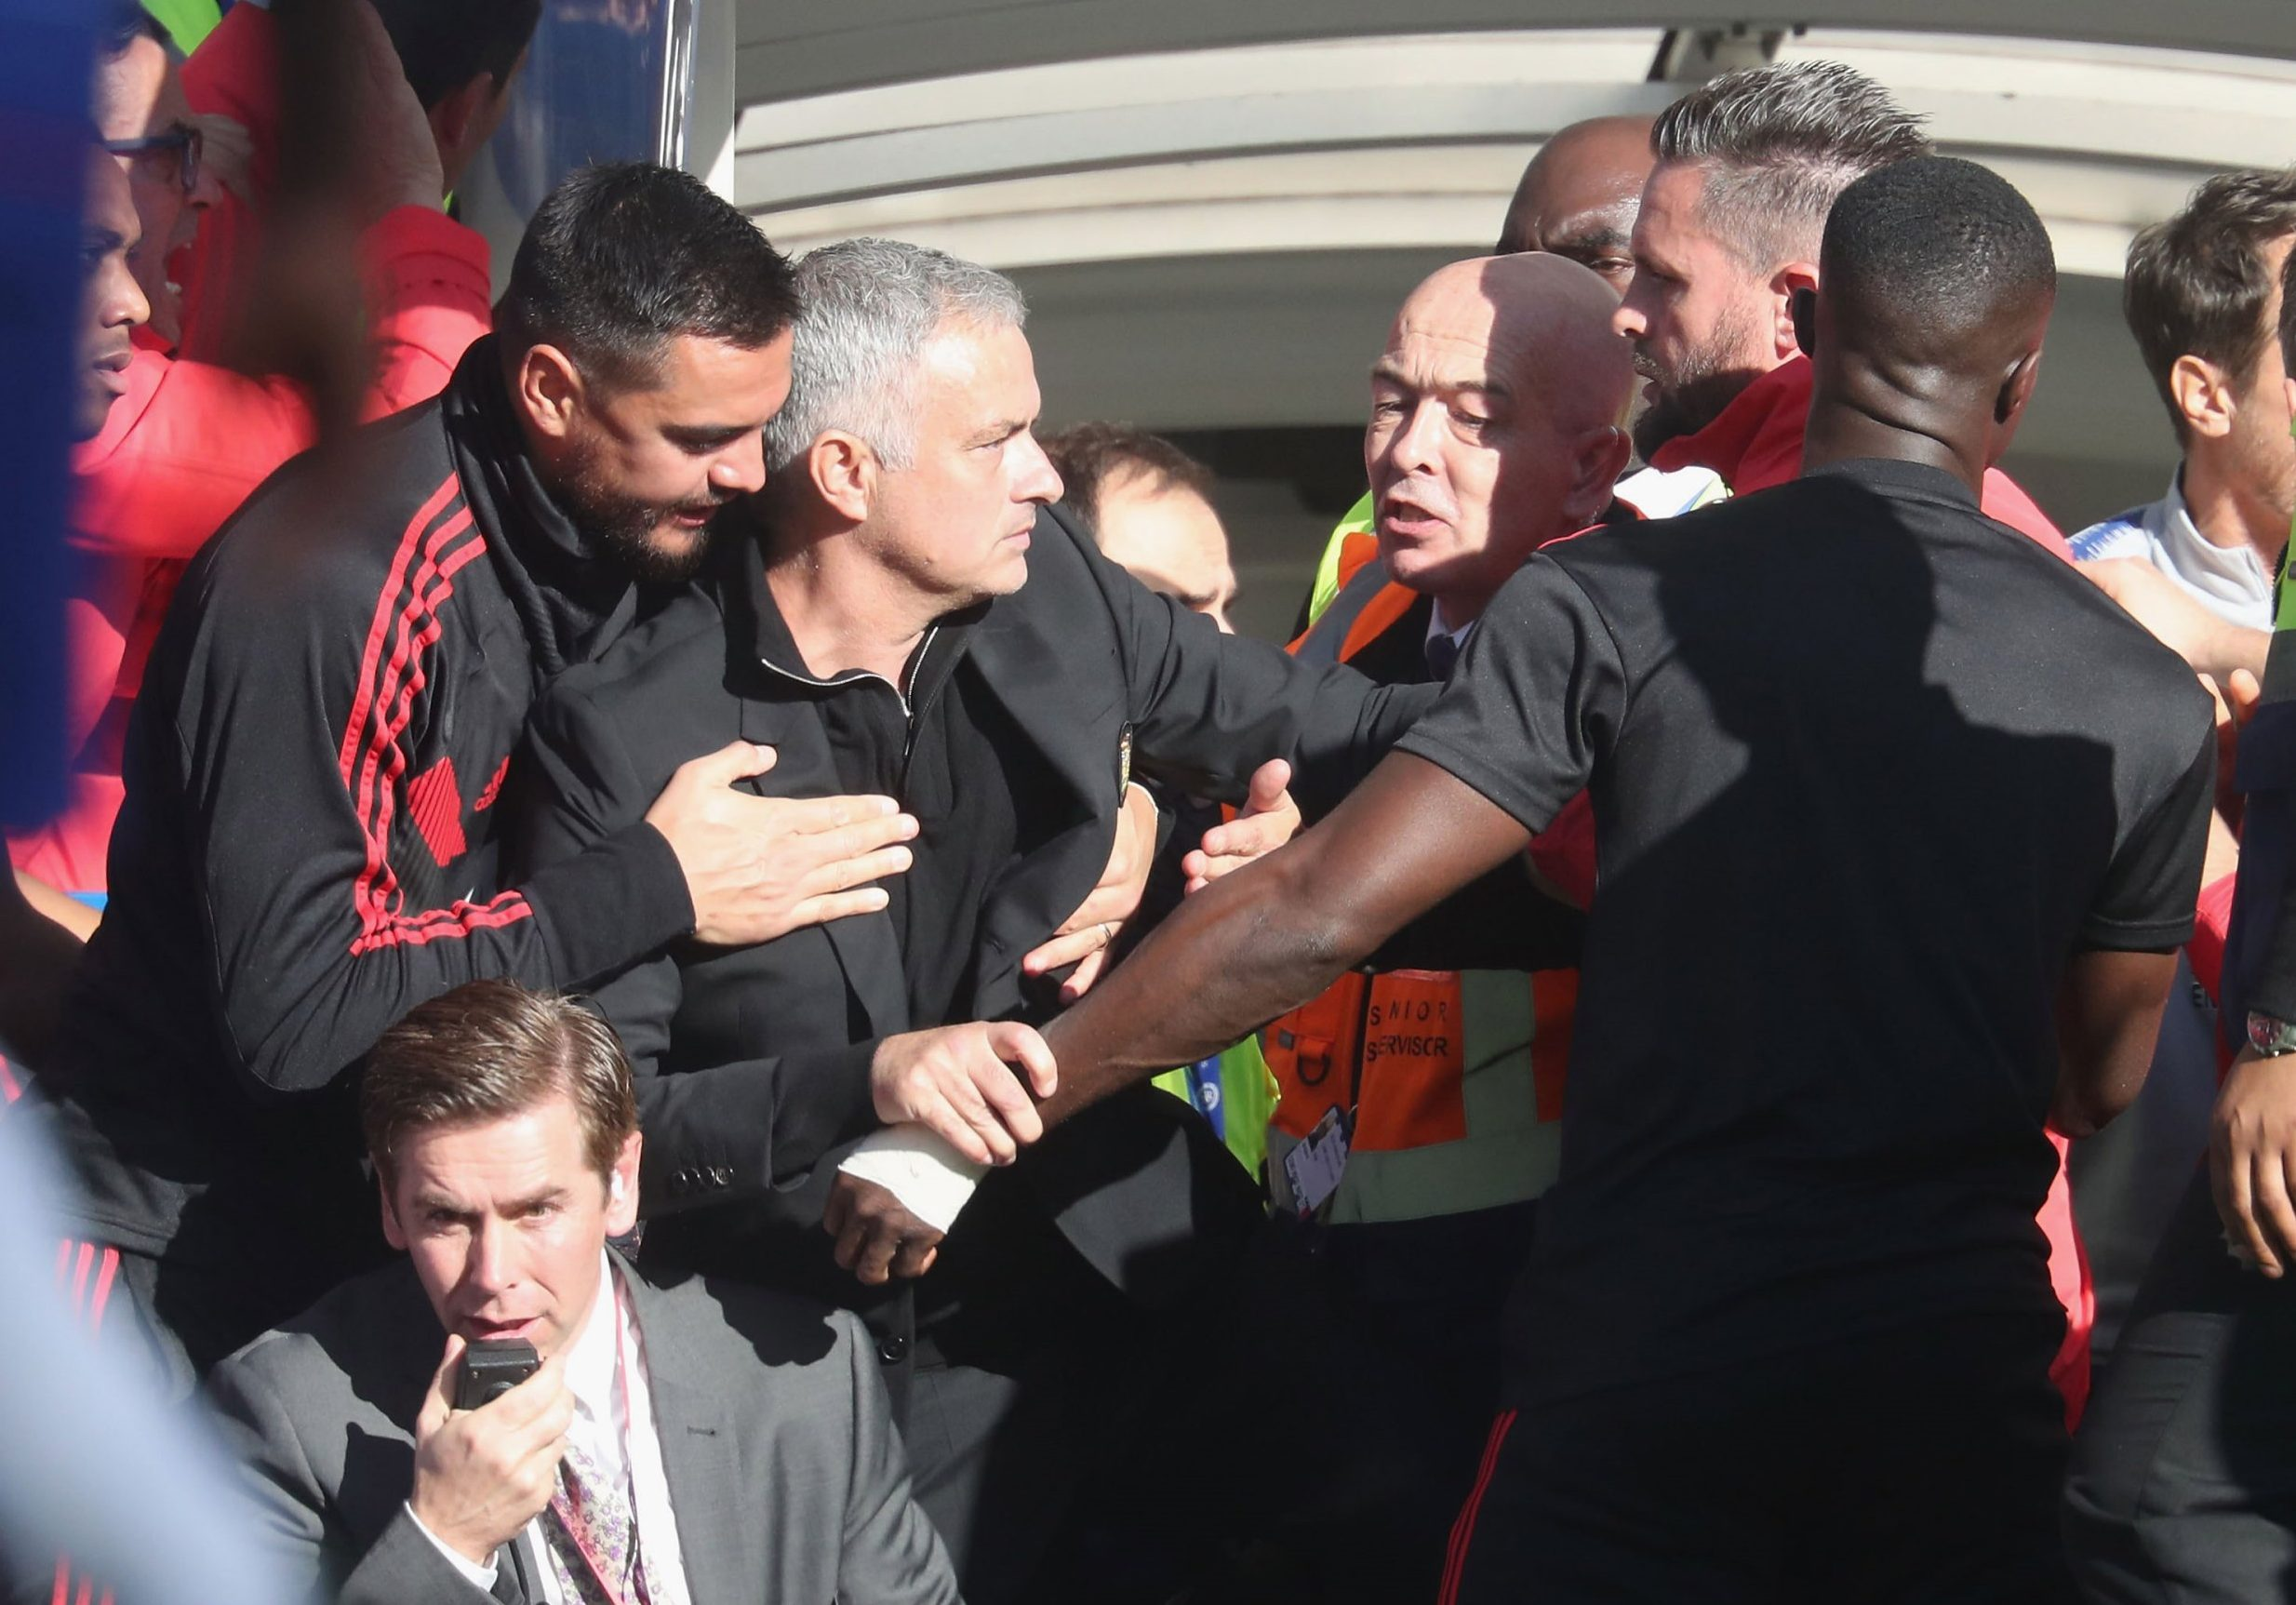 Chelsea should SACK Marco Ianni for 'disgraceful' celebrations in front of Jose Mourinho, says Phil Neville